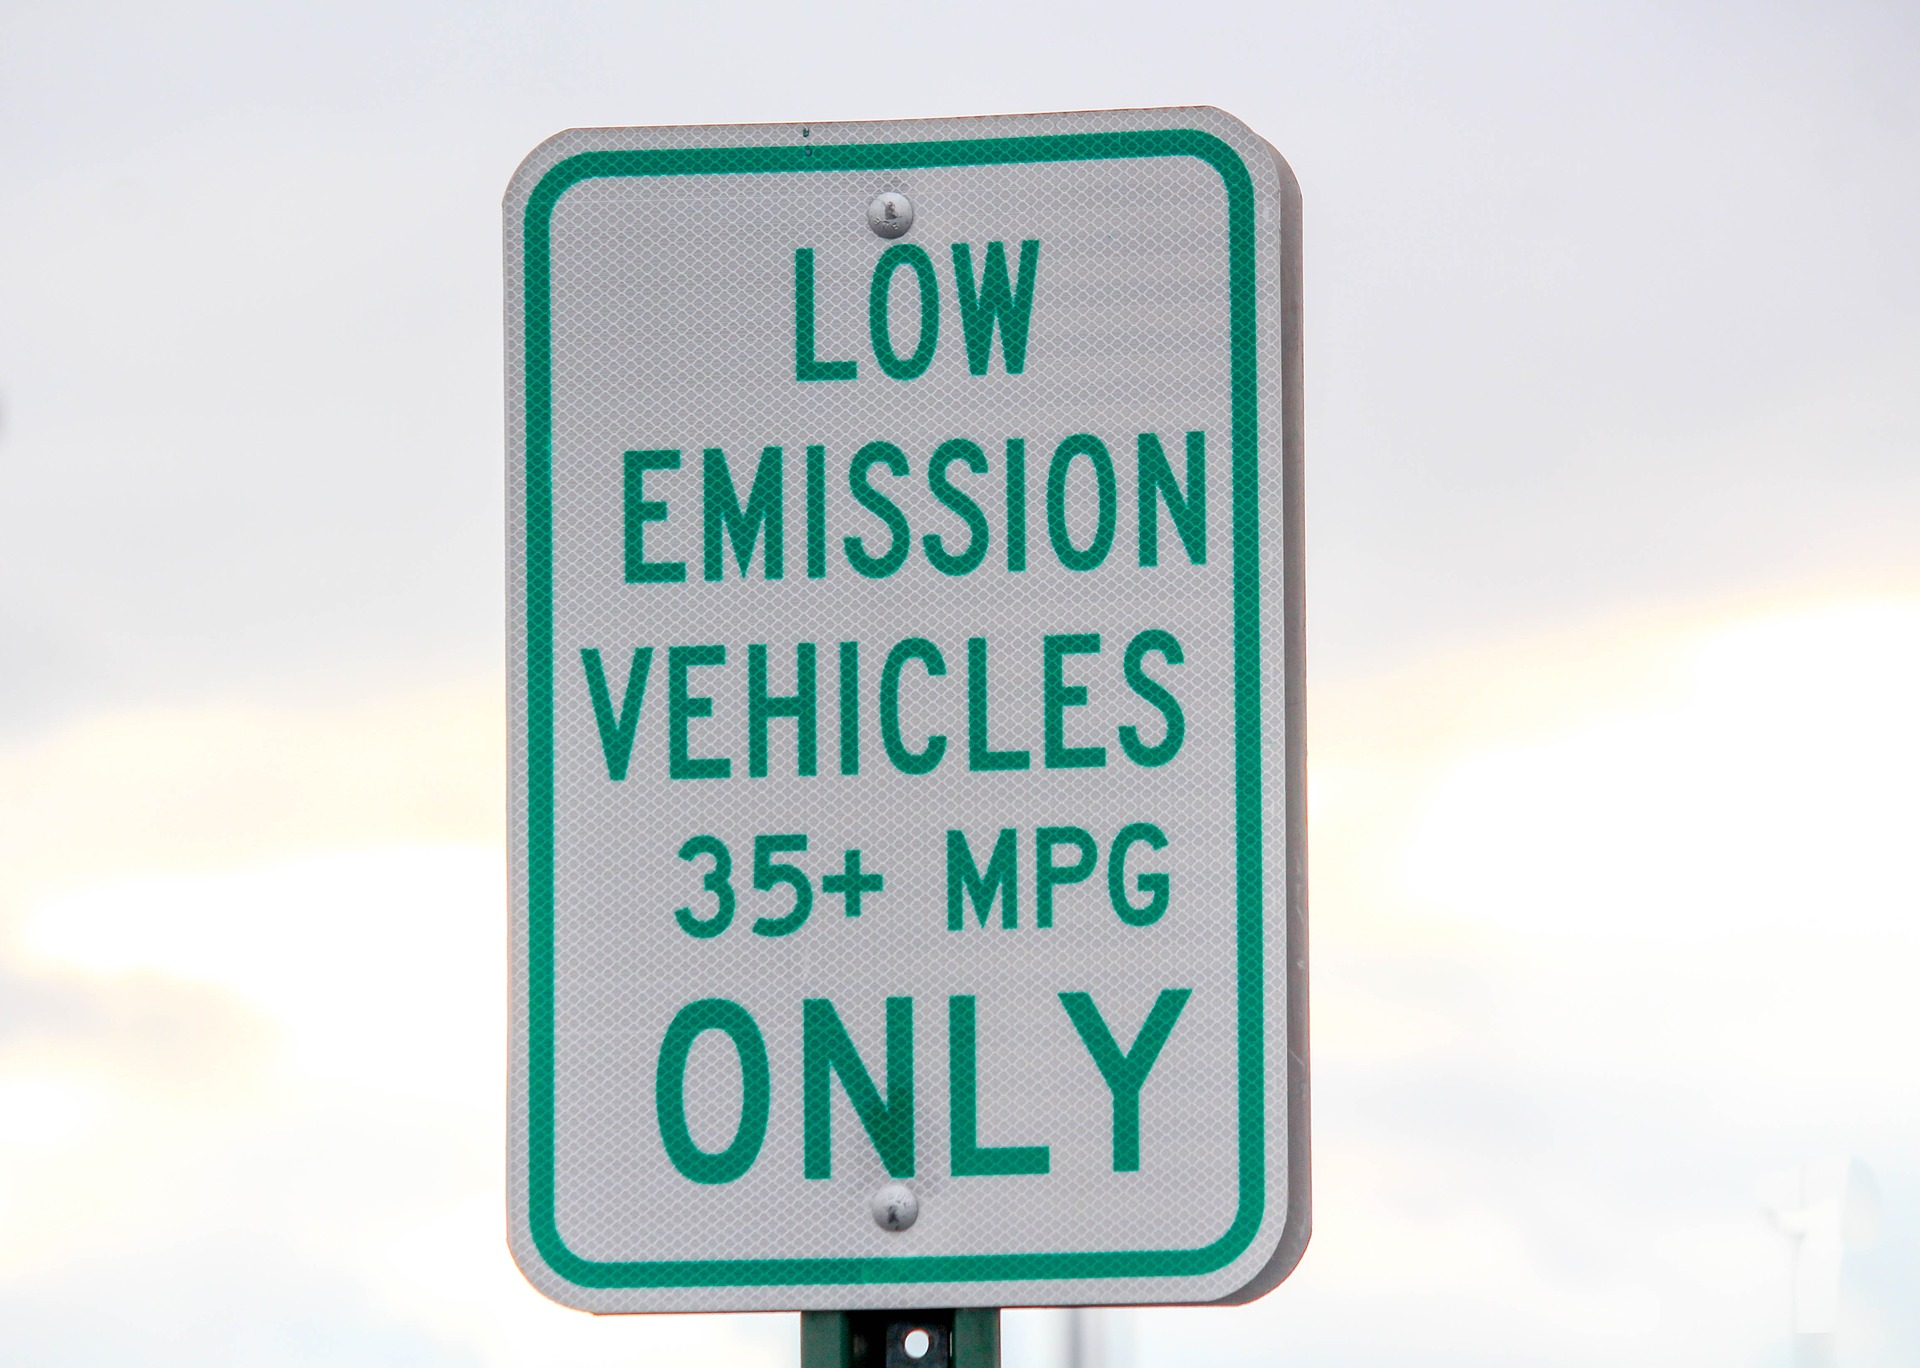 R&D Competition Opens to Secure Future of Zero Emission Vehicles